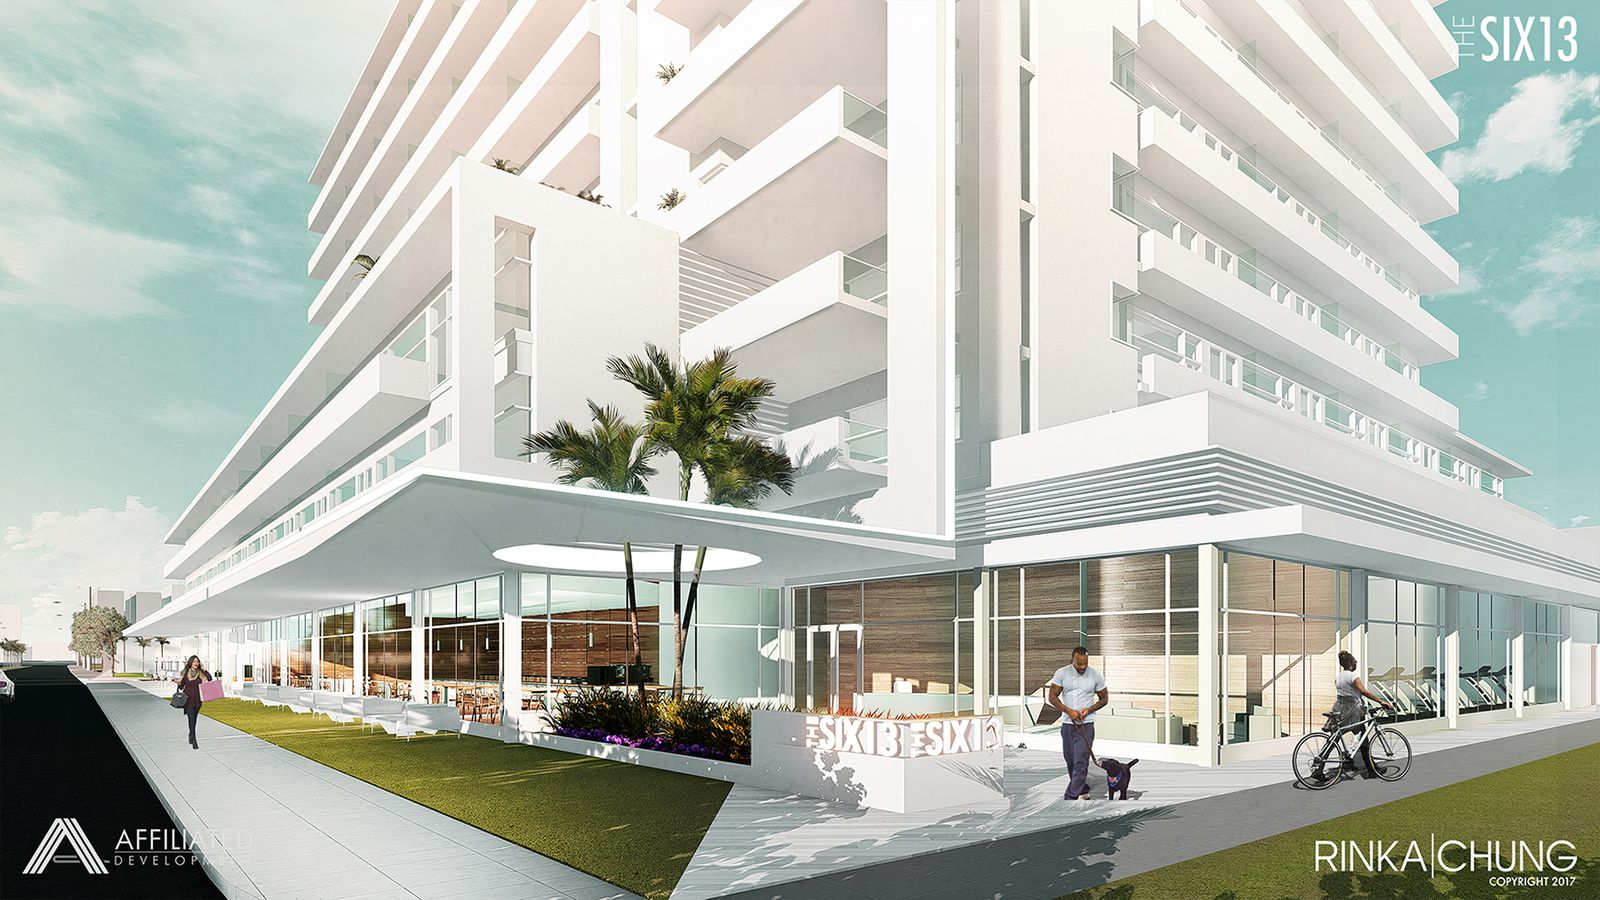 Fort lauderdale approves workforce rental development six13 curbed miami for 1 bedroom apartments ft lauderdale